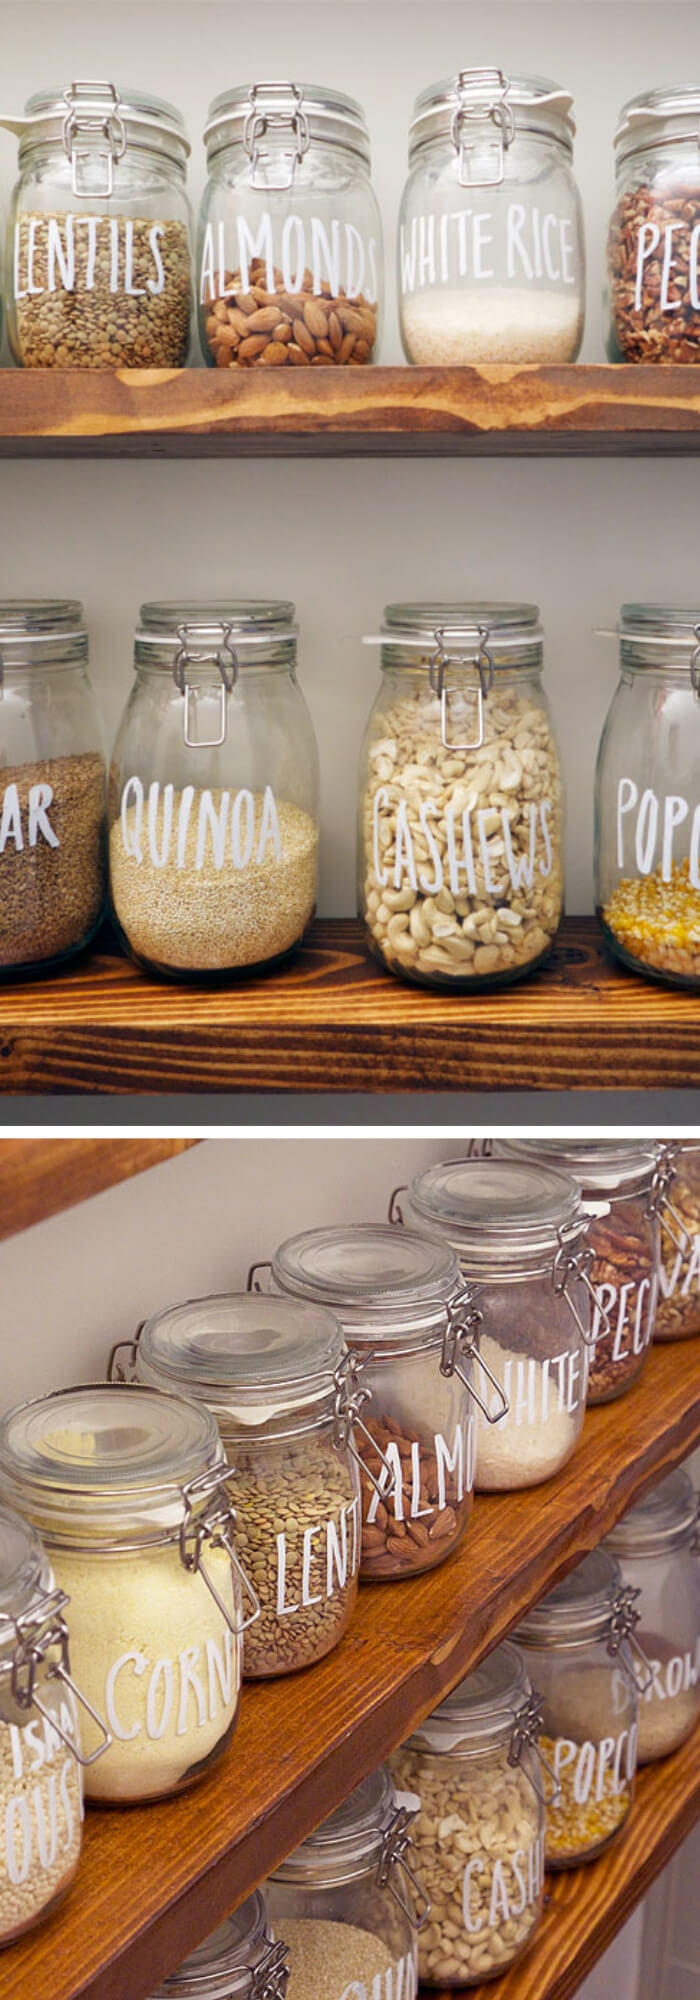 Storage dry goods with mason jars | Inspiring Farmhouse Kitchen Design & Decor Ideas